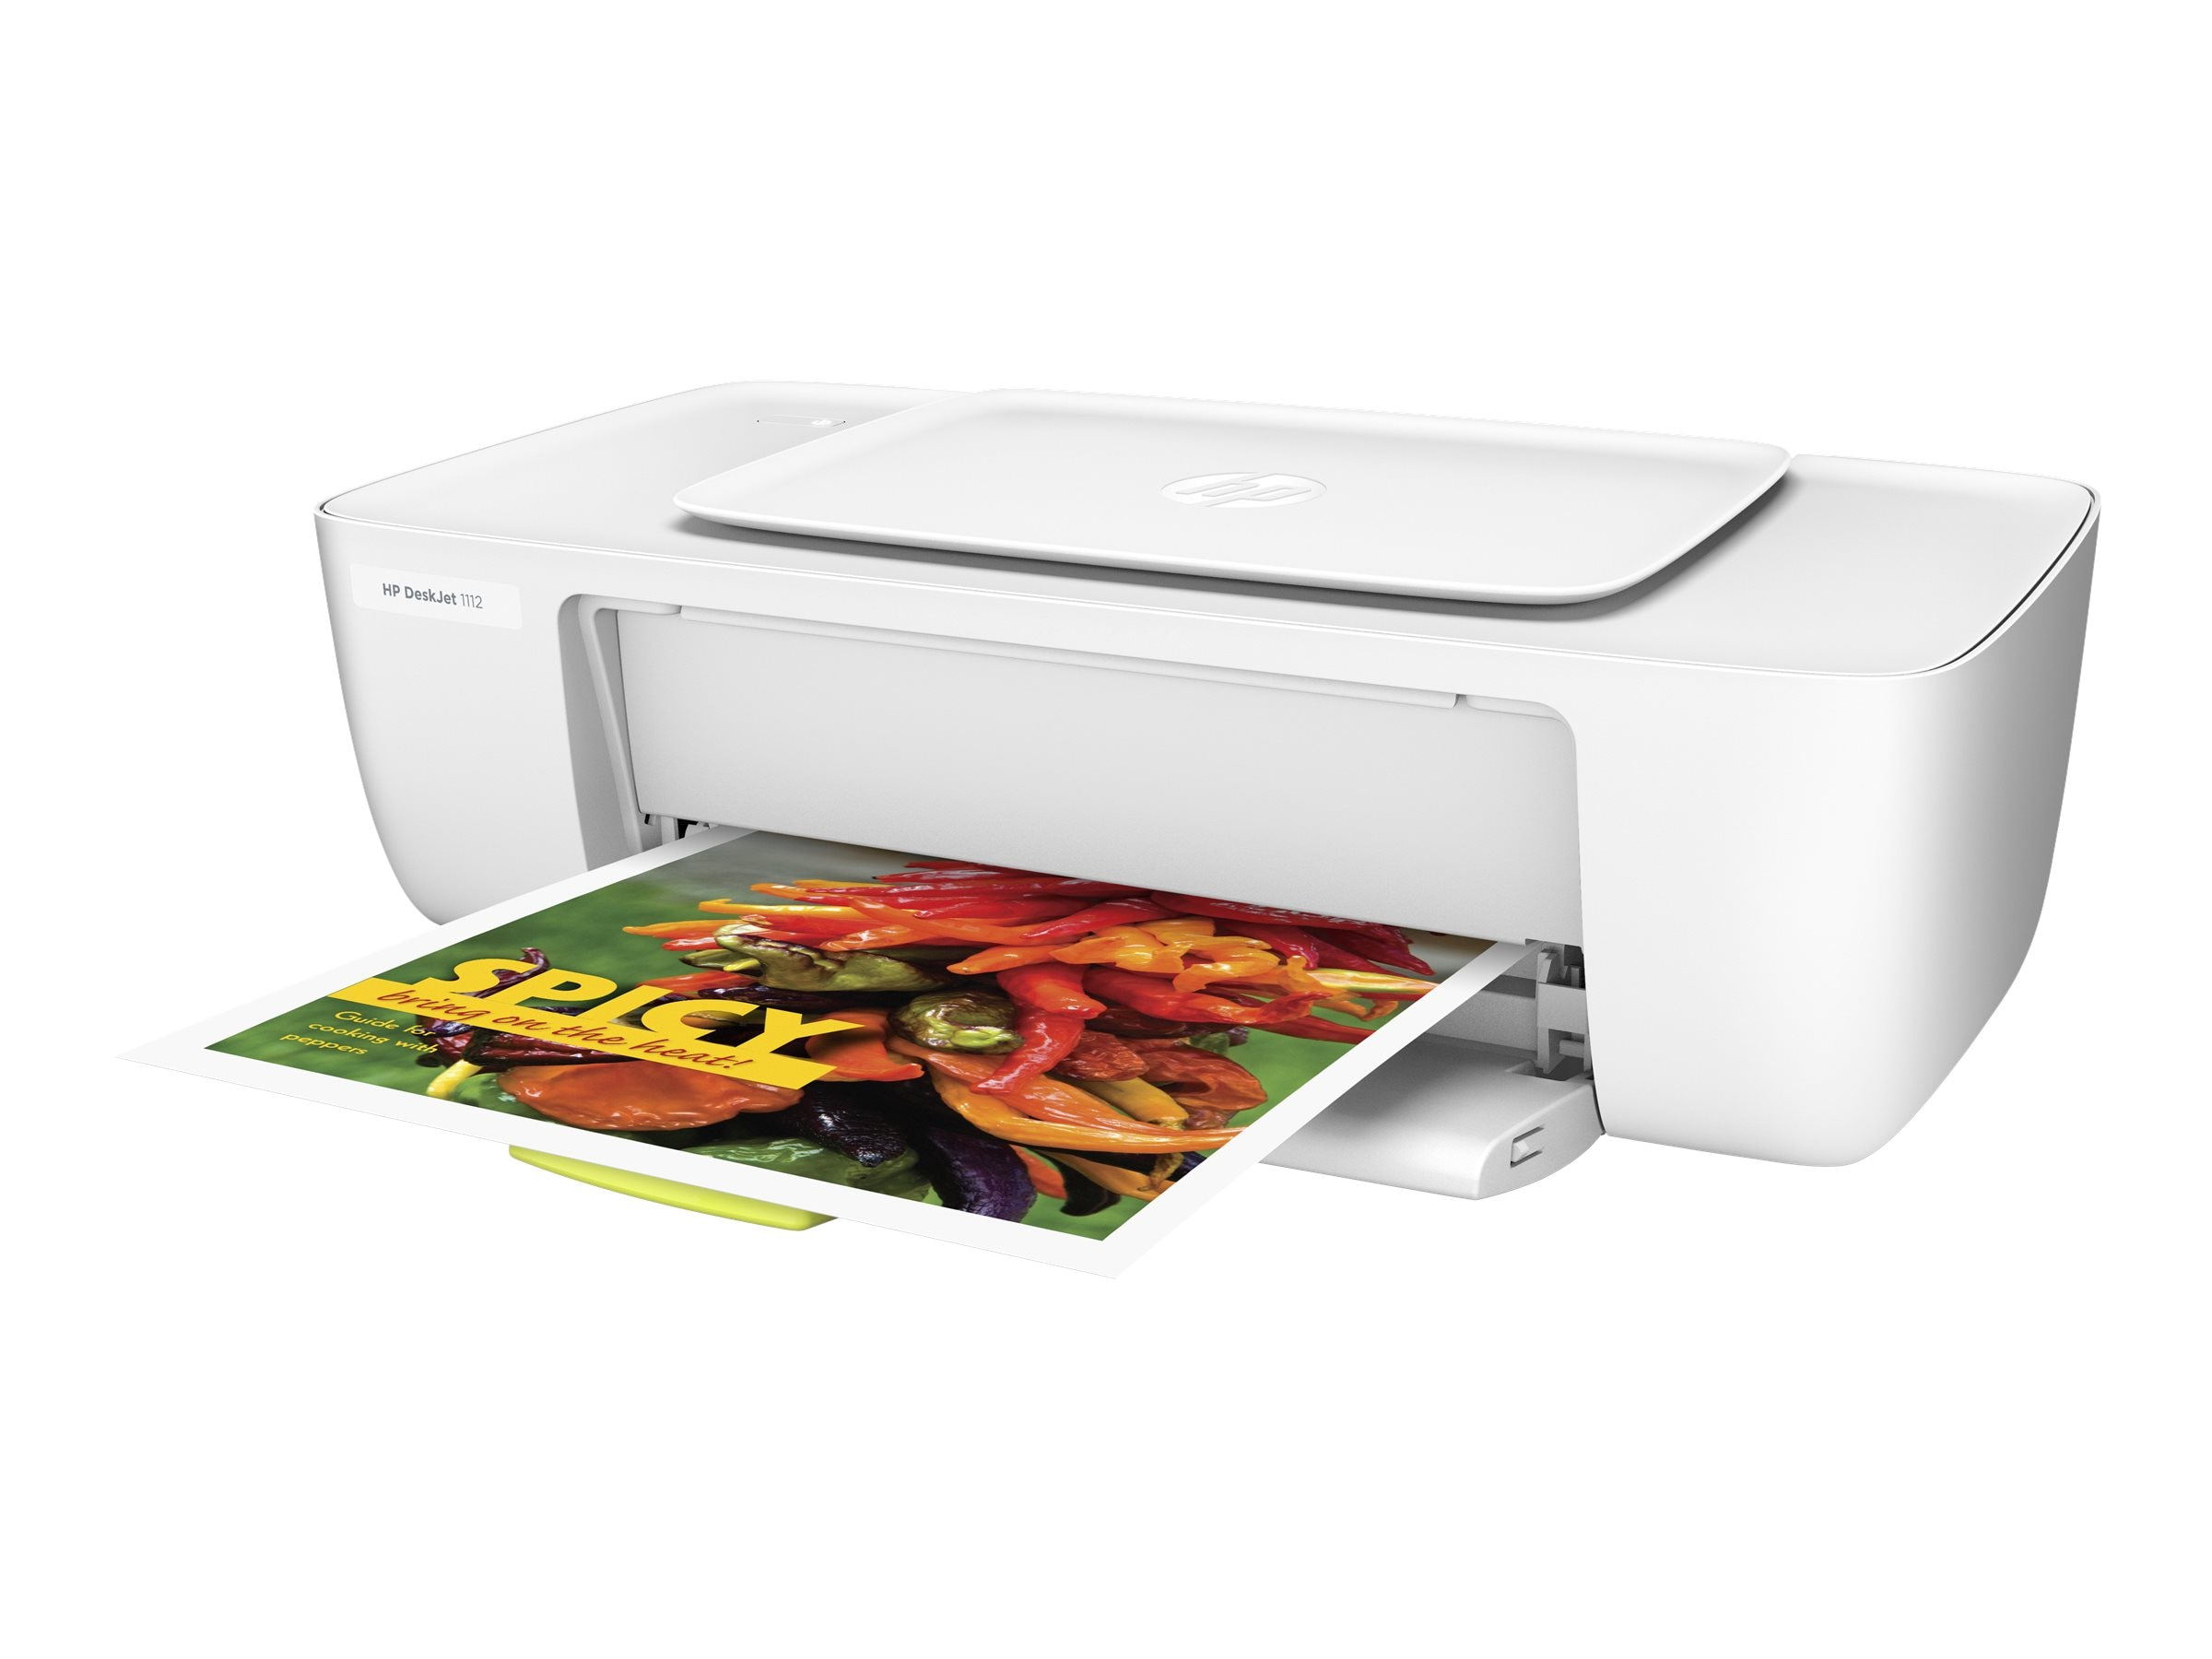 HP Deskjet 1112 Printer, F5S23A#B1H